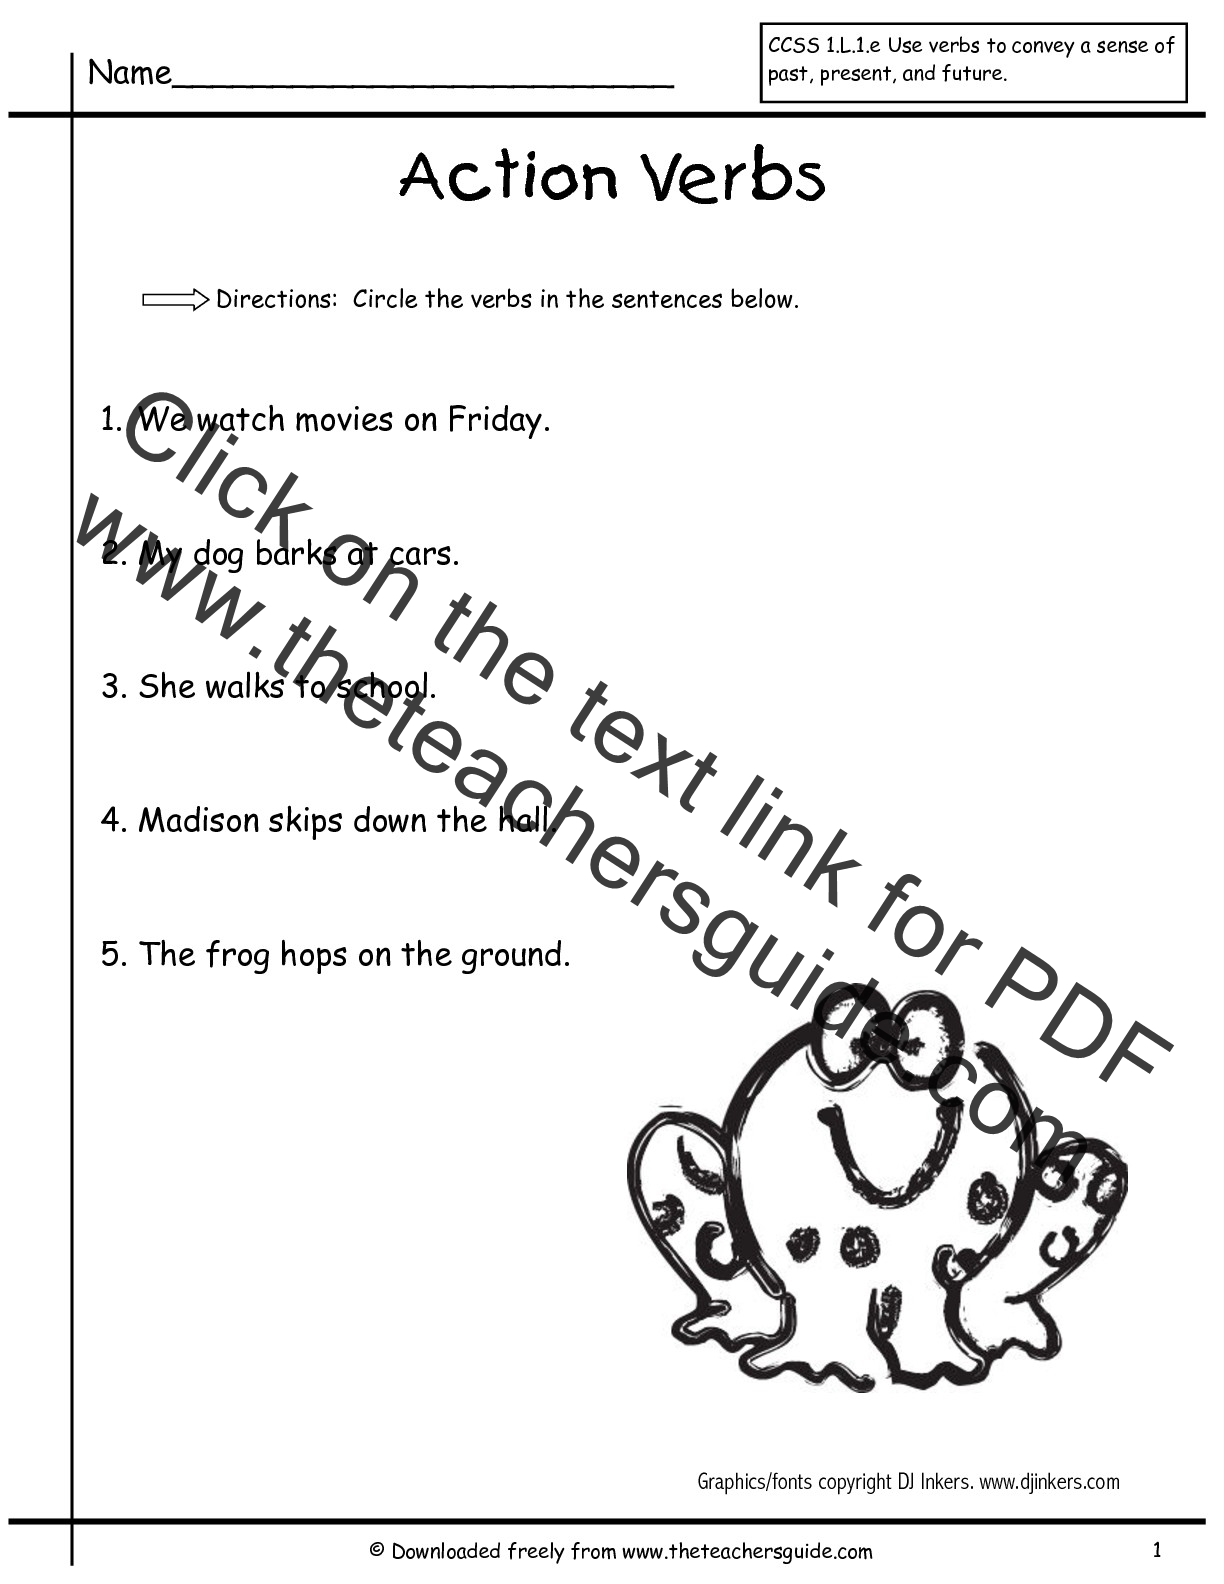 Verbs Worksheets For 2nd Grade - Thimothy Worksheet